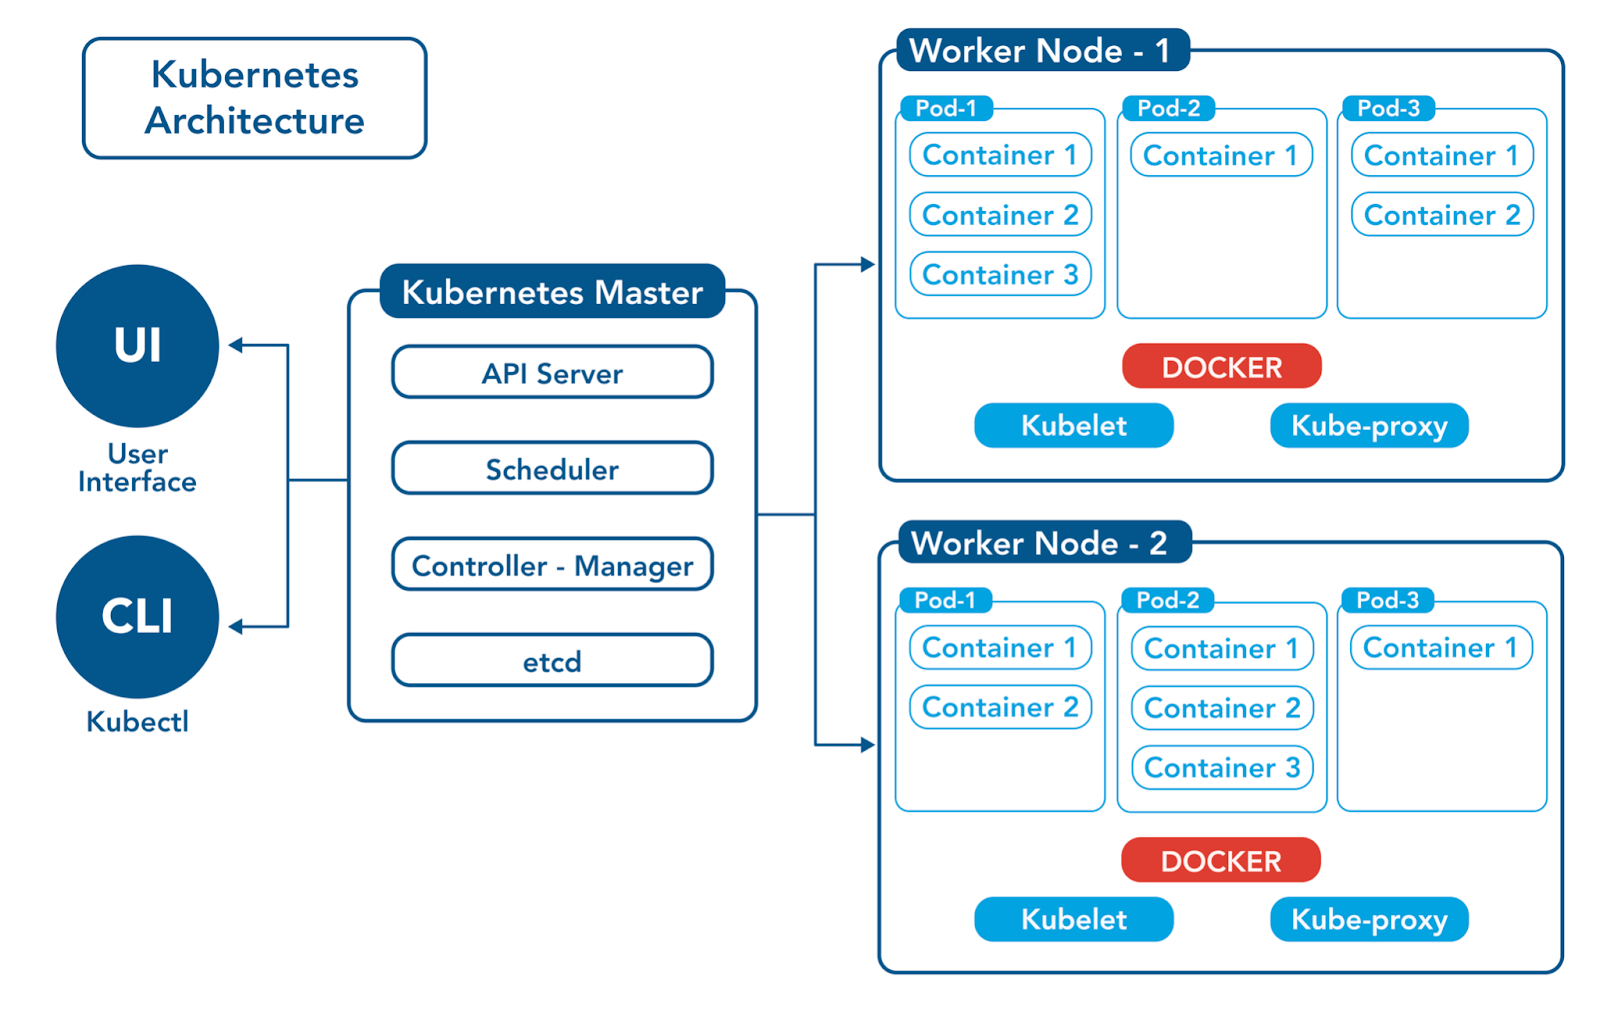 The Kubernetes cluster includes Kubernetes Master and Worker Nodes.